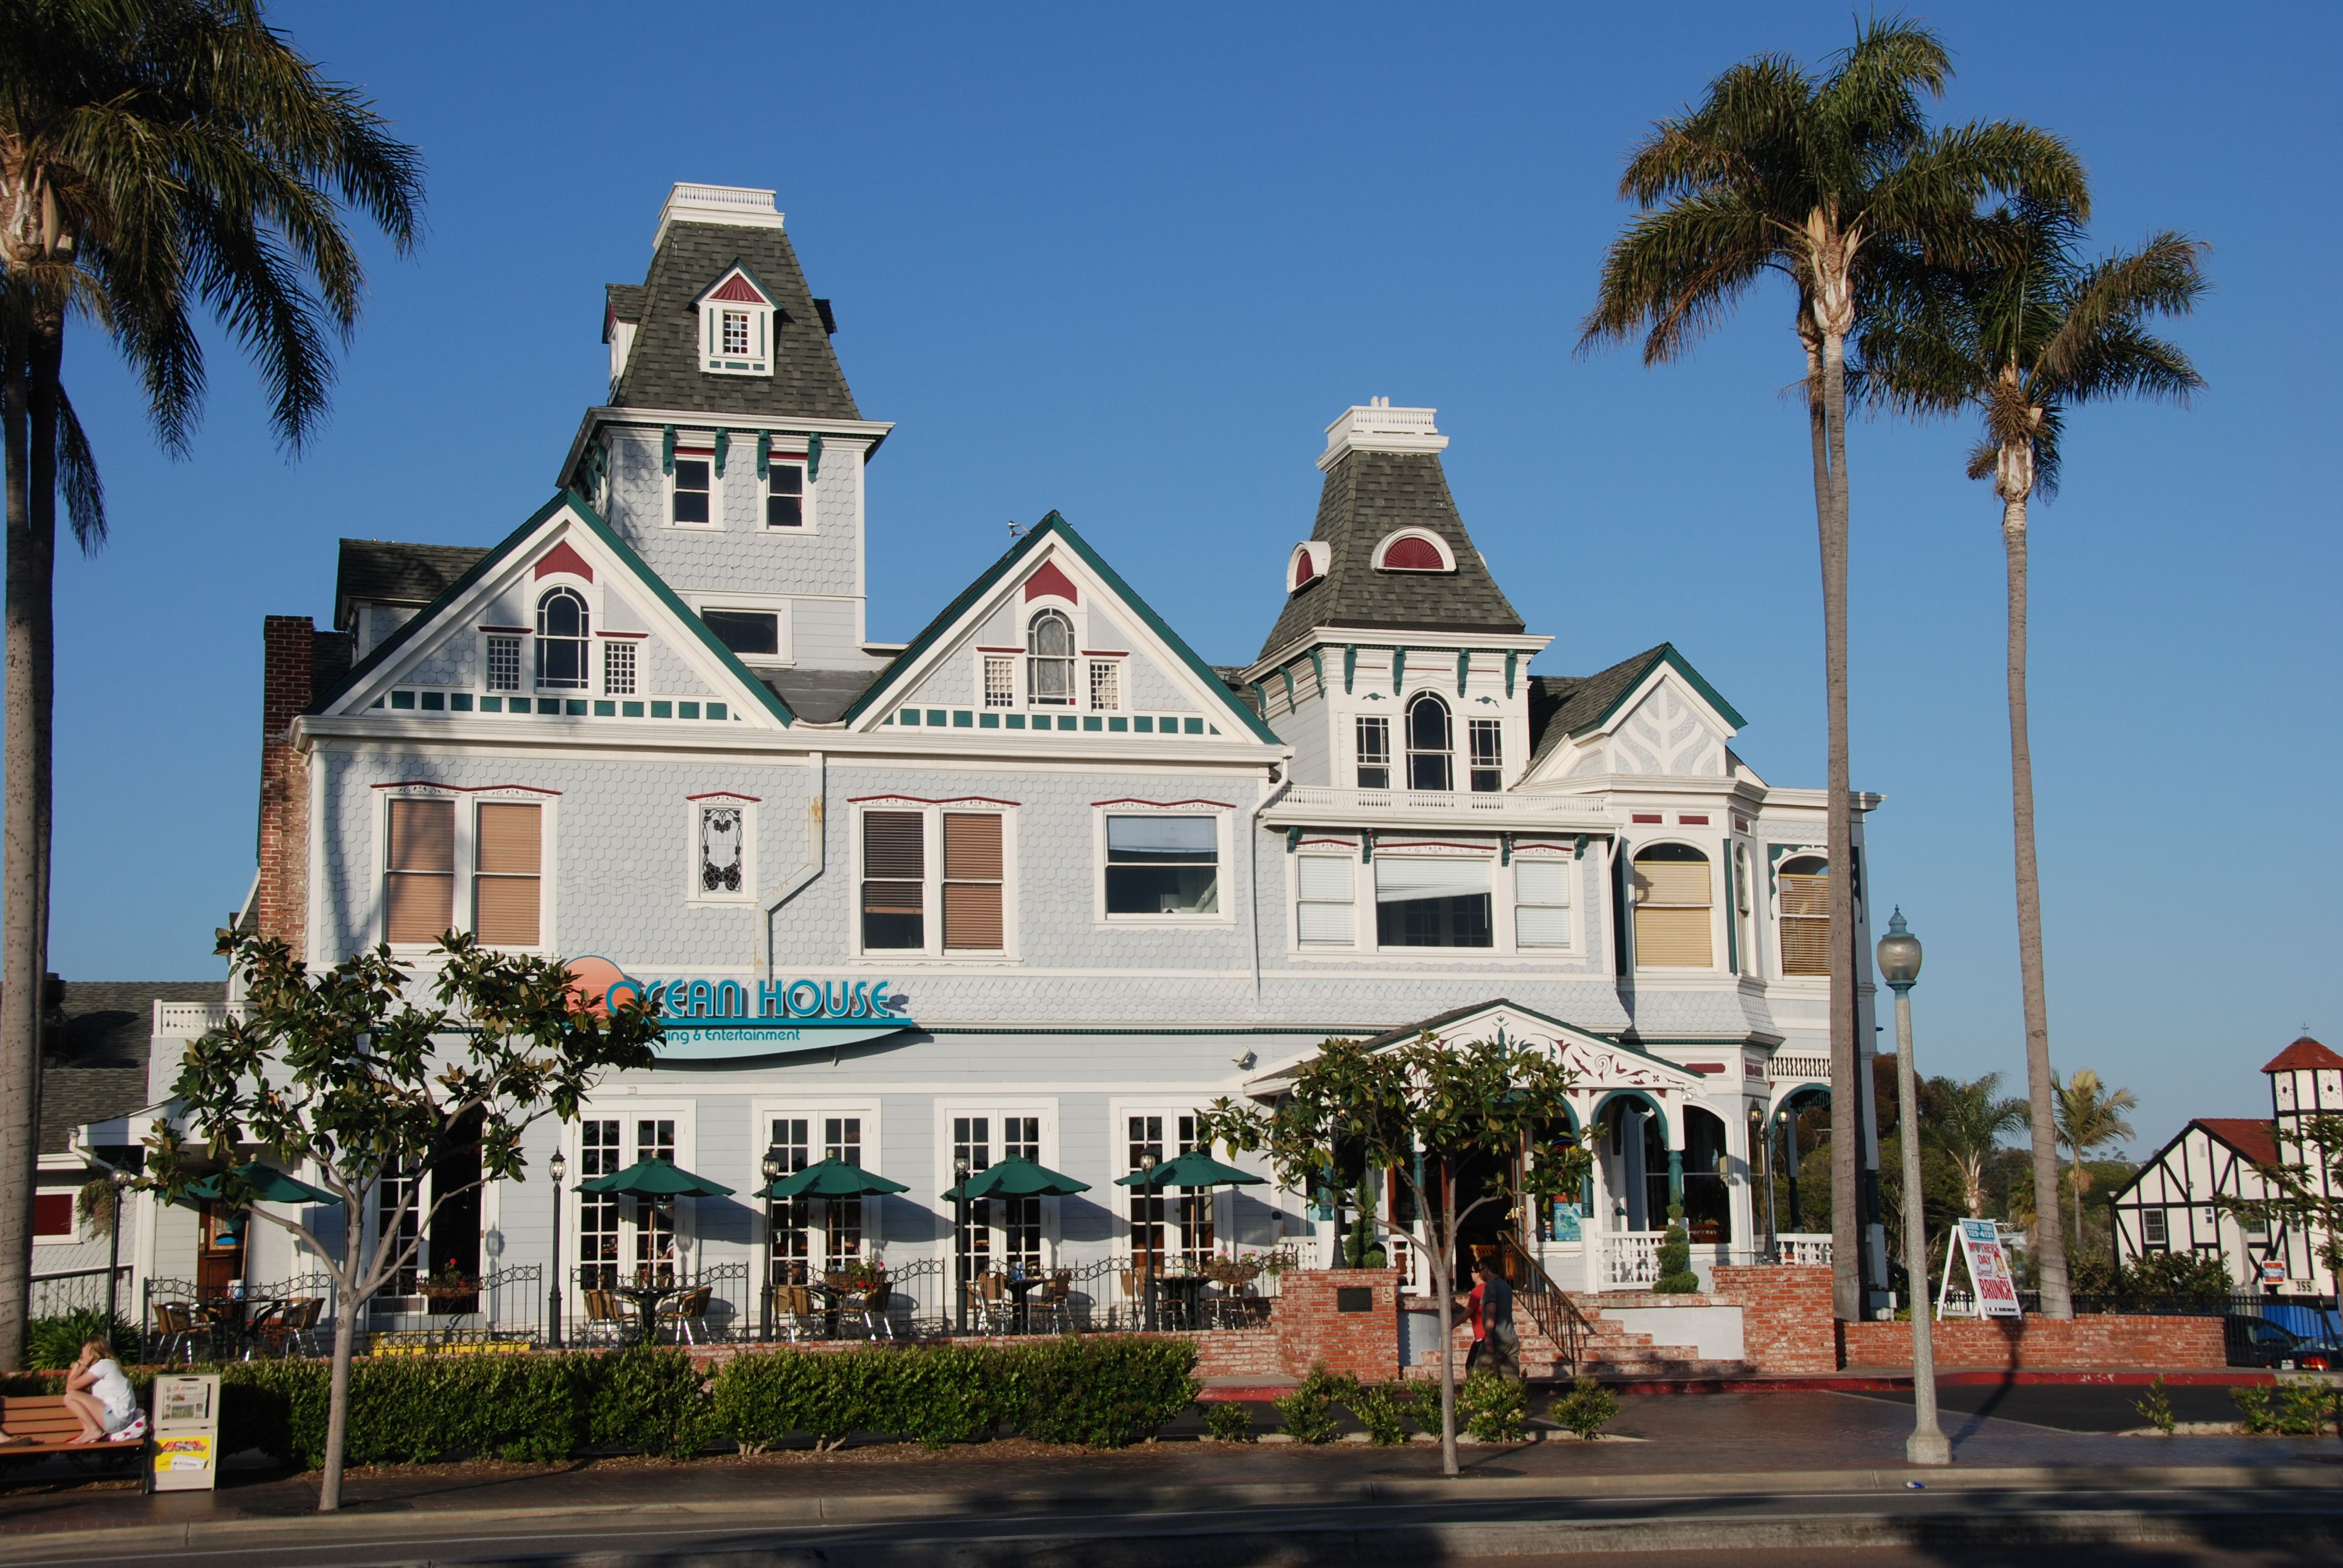 Ocean House Restaurant was formerly known as the Twin Inns in 1900!